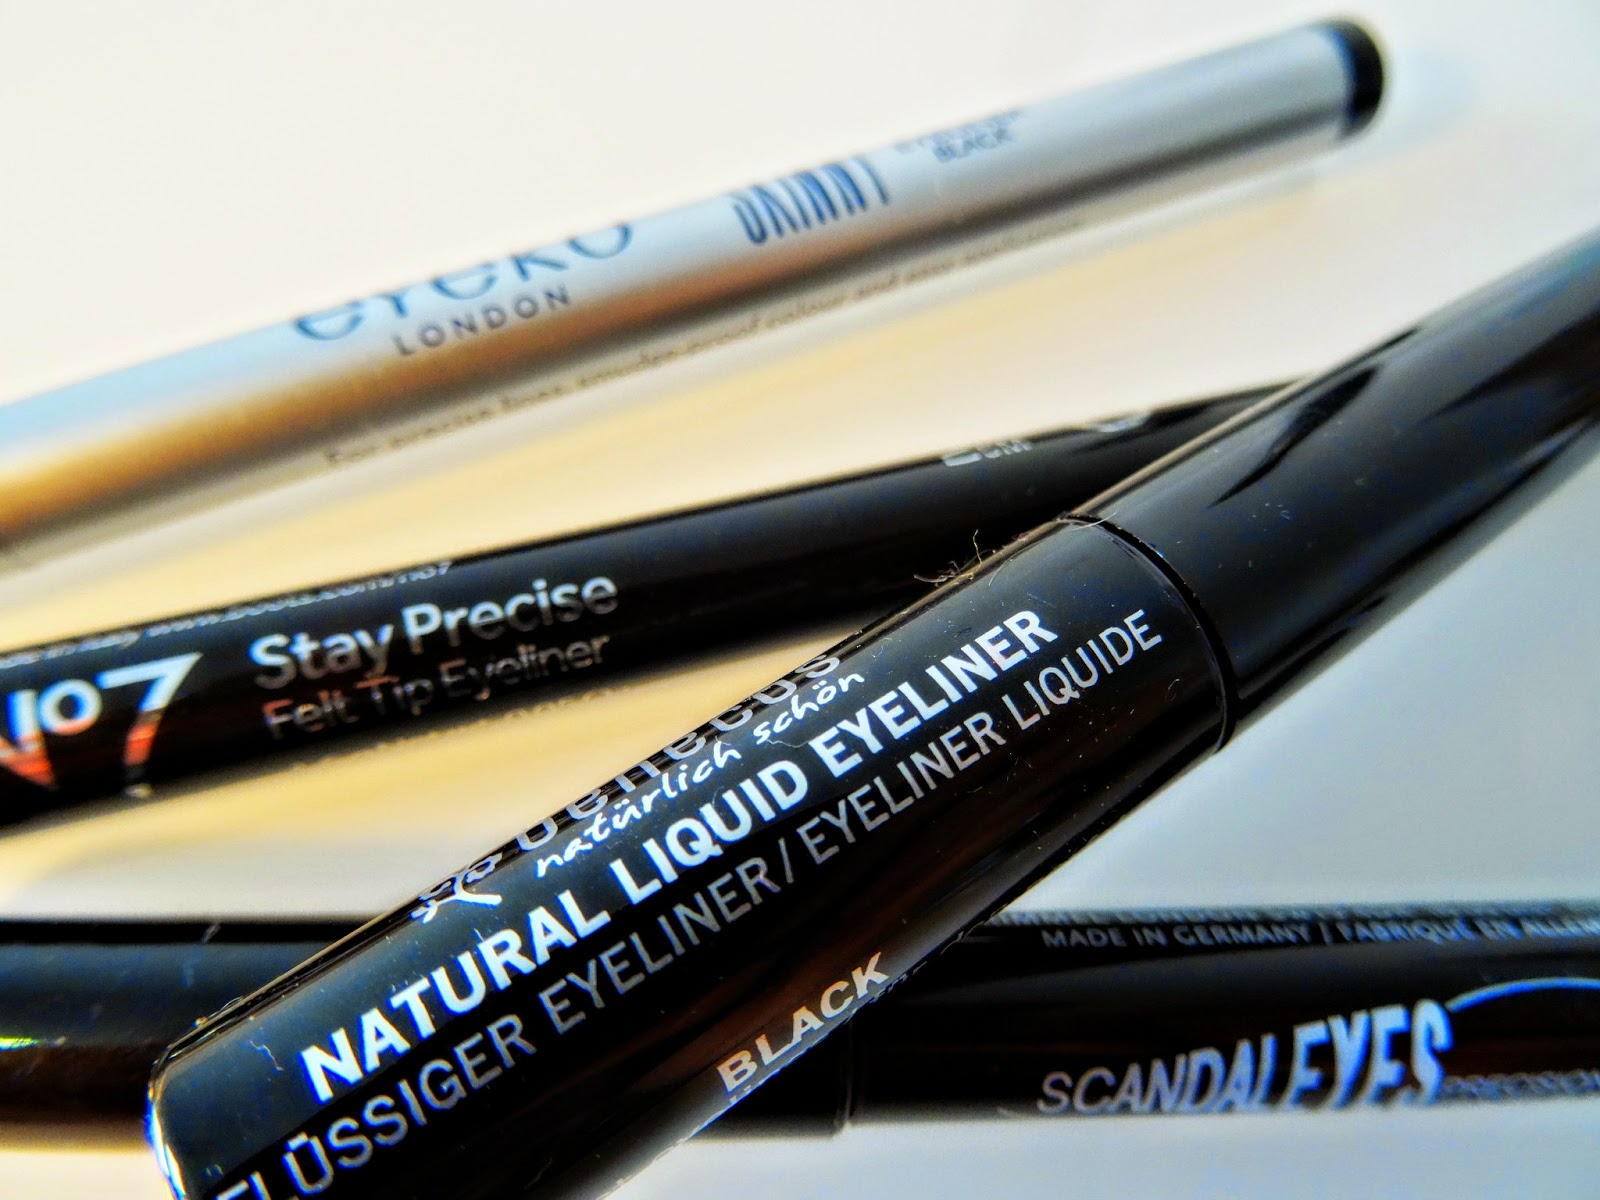 what's the best liquid eyeliner? review and suggestions